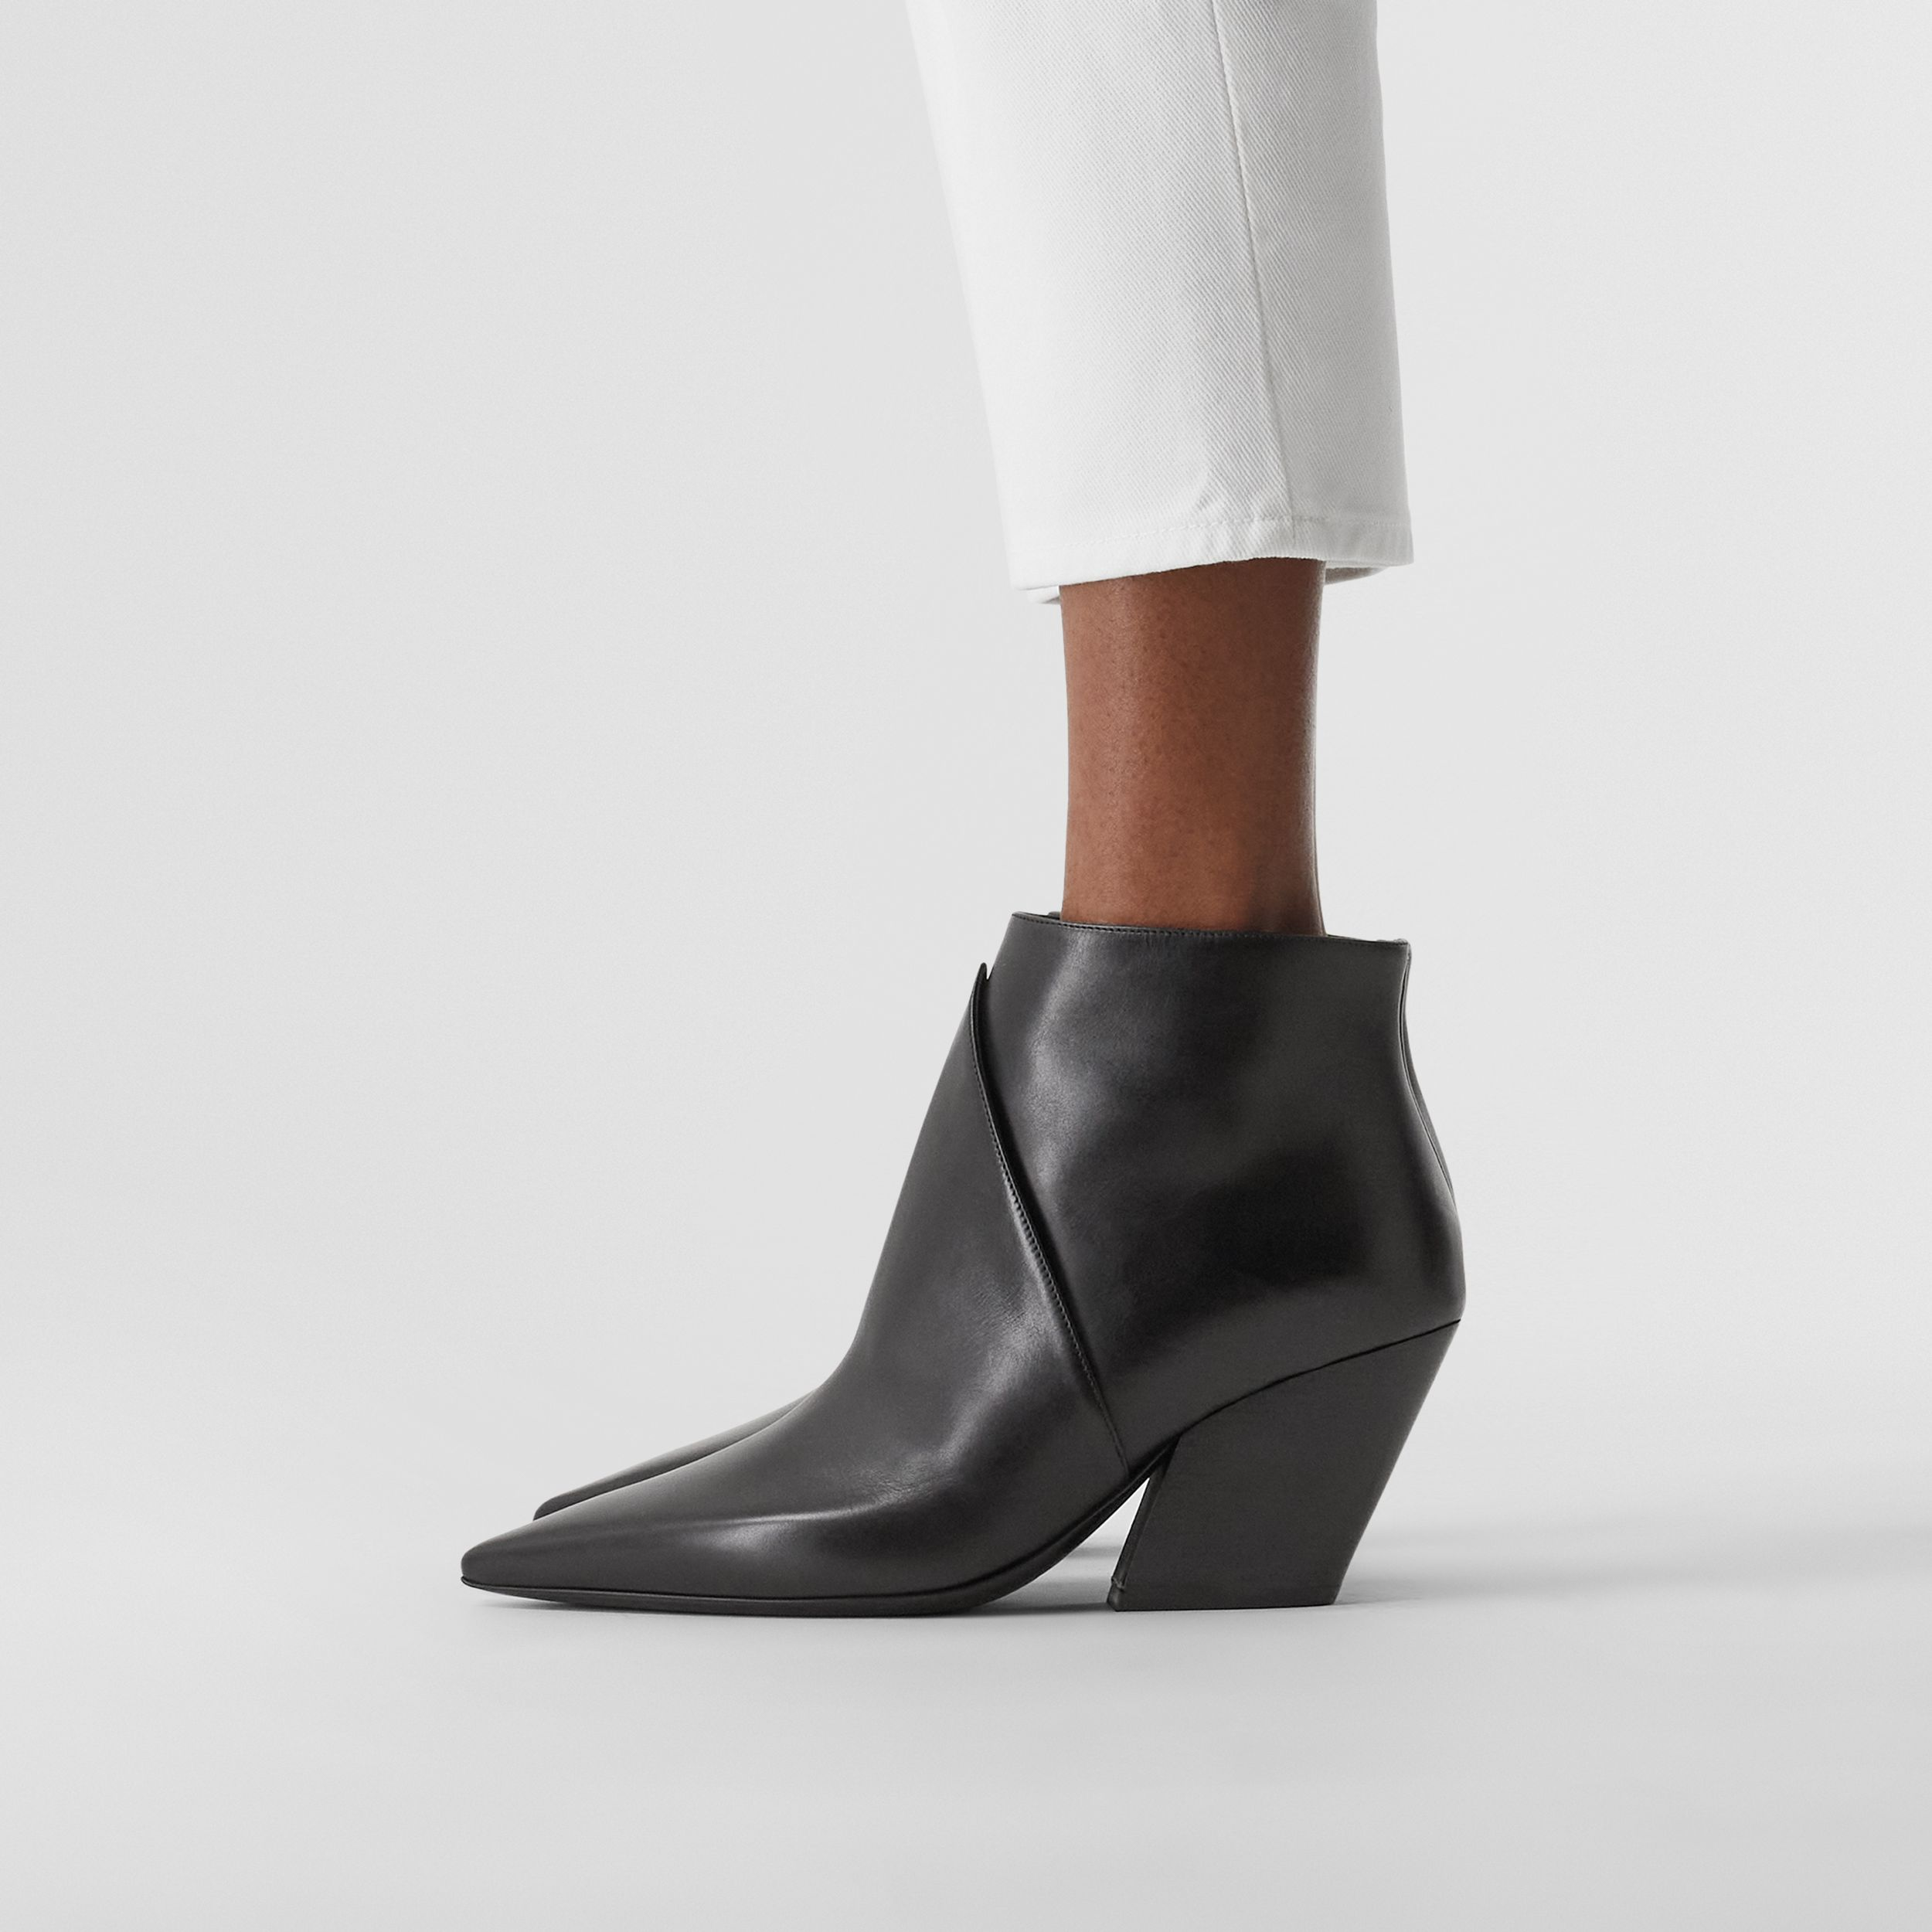 Leather Ankle Boots in Black - Women | Burberry - 3